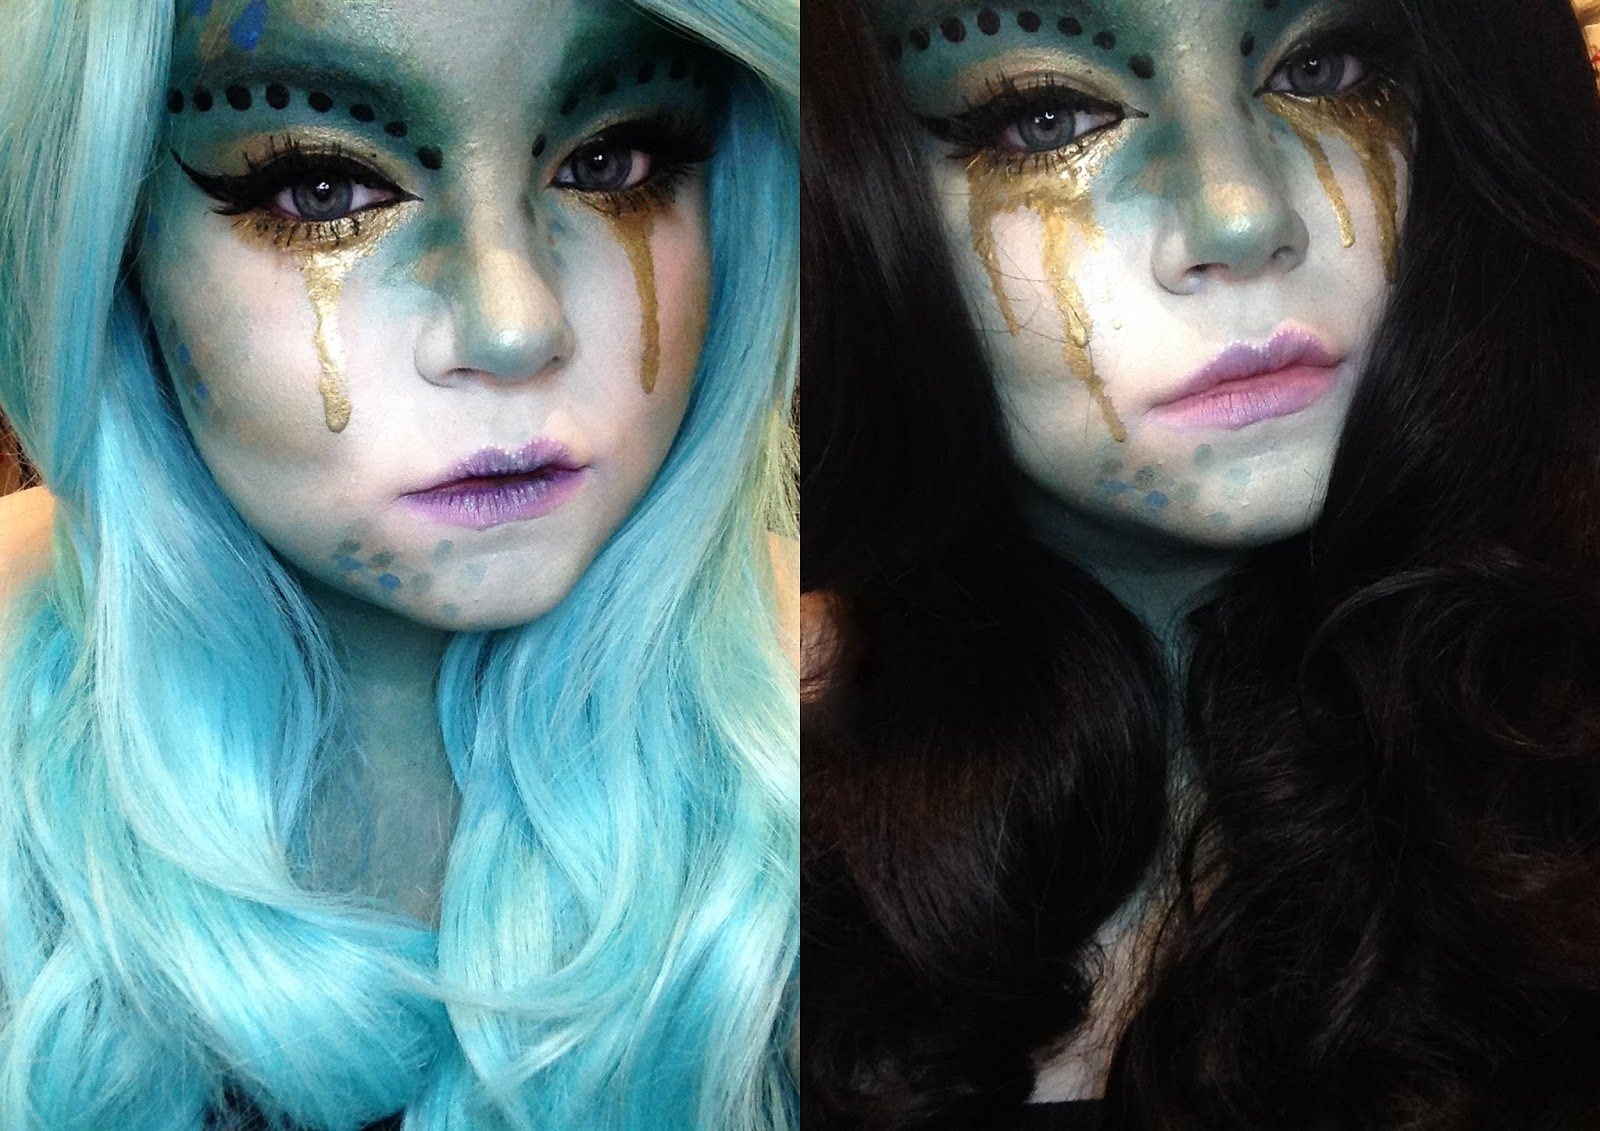 Evil mermaid make up look